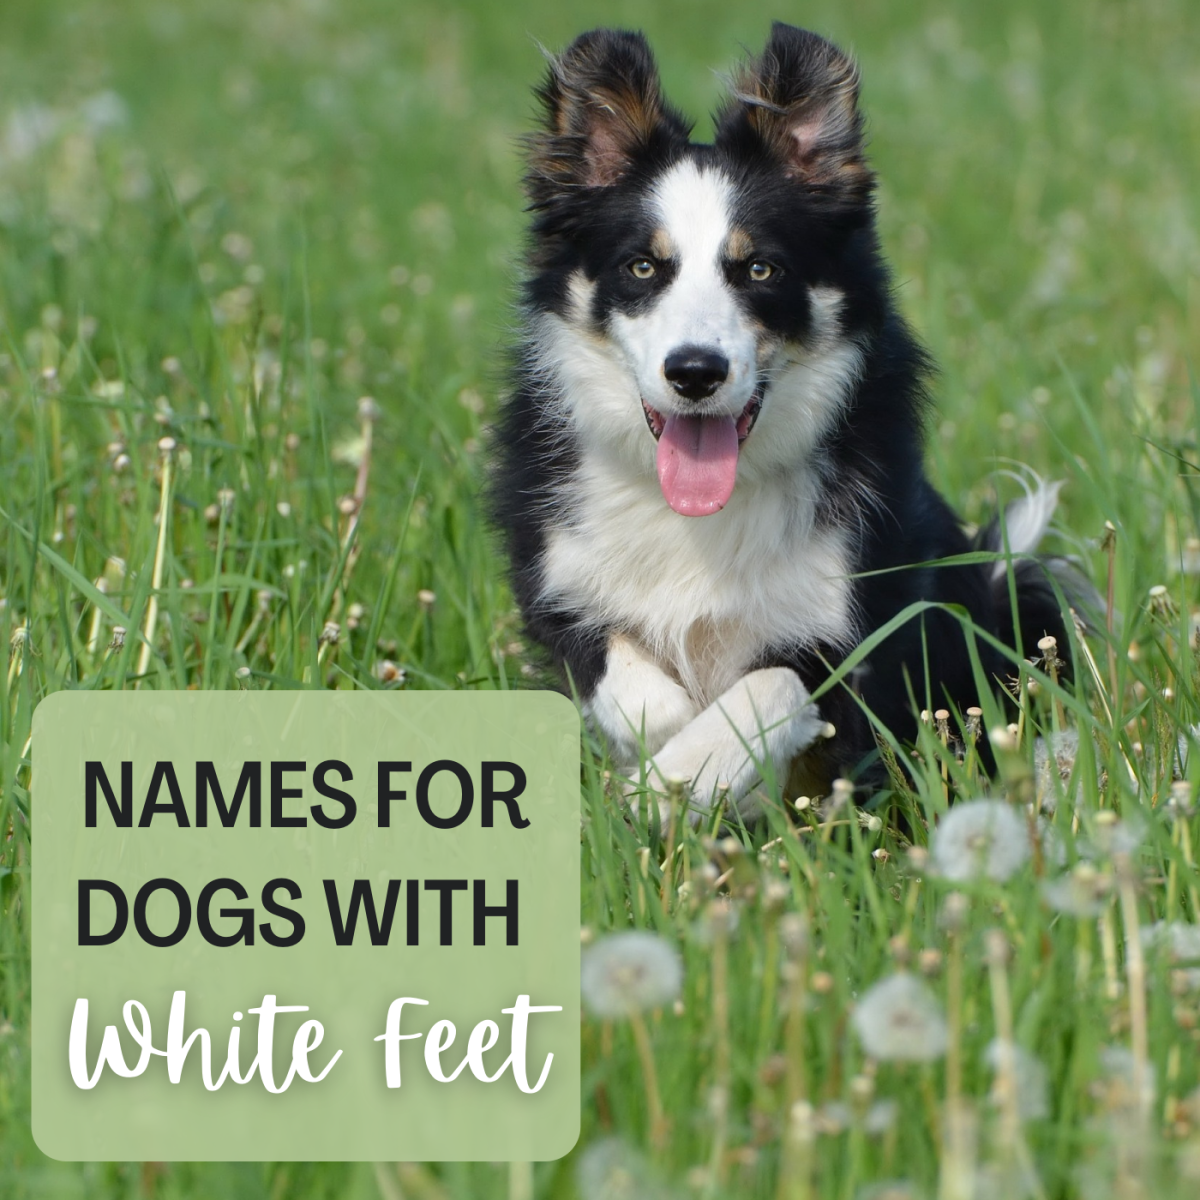 These names will be perfect for your white-footed dog!